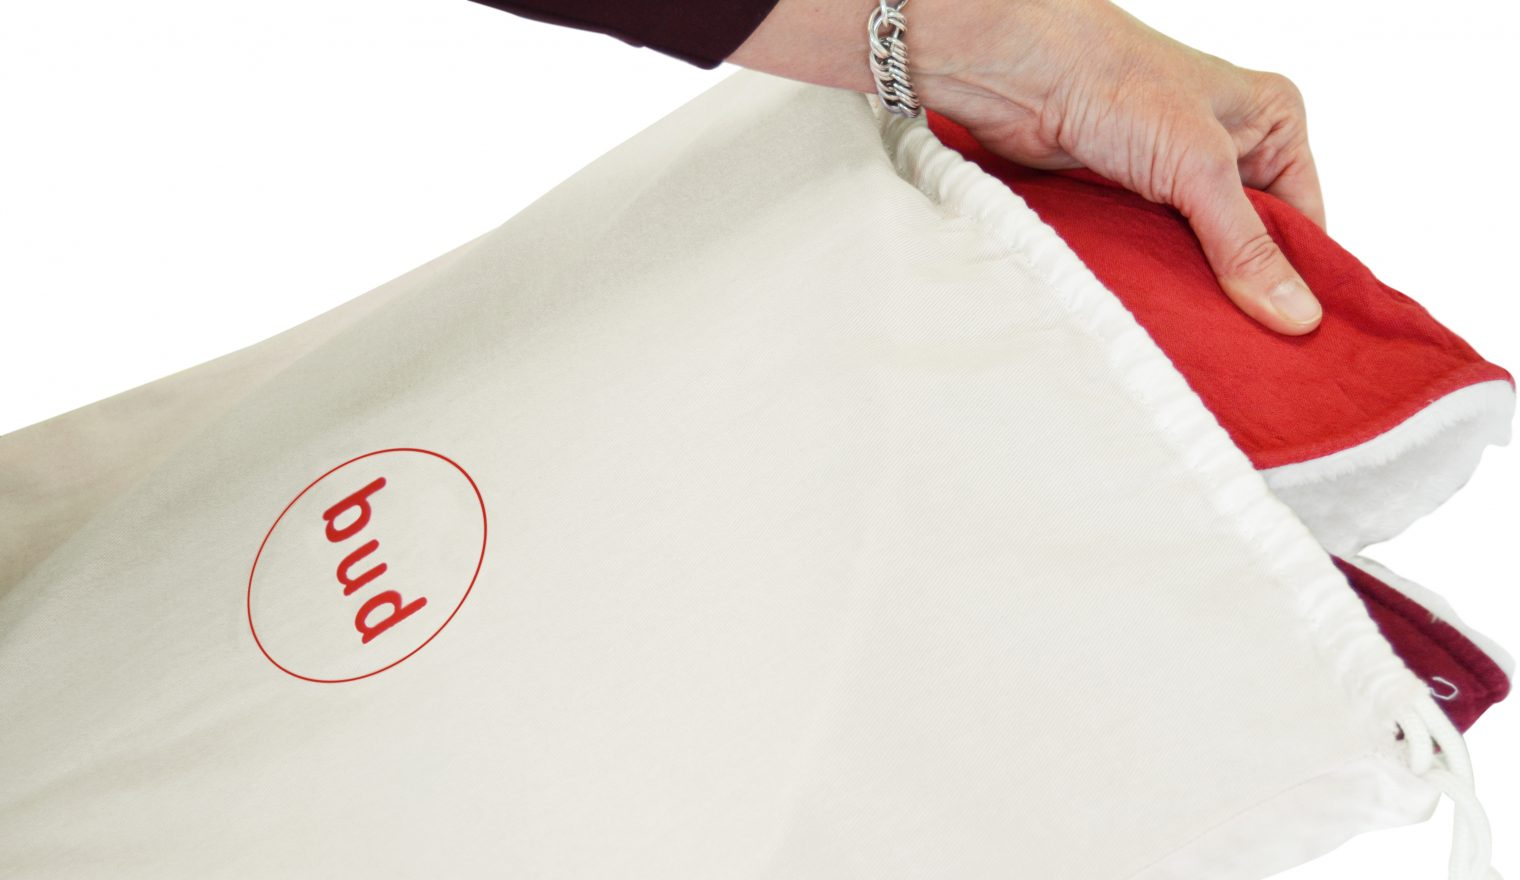 A hand pulling a Bud sensory cushion out from its bag